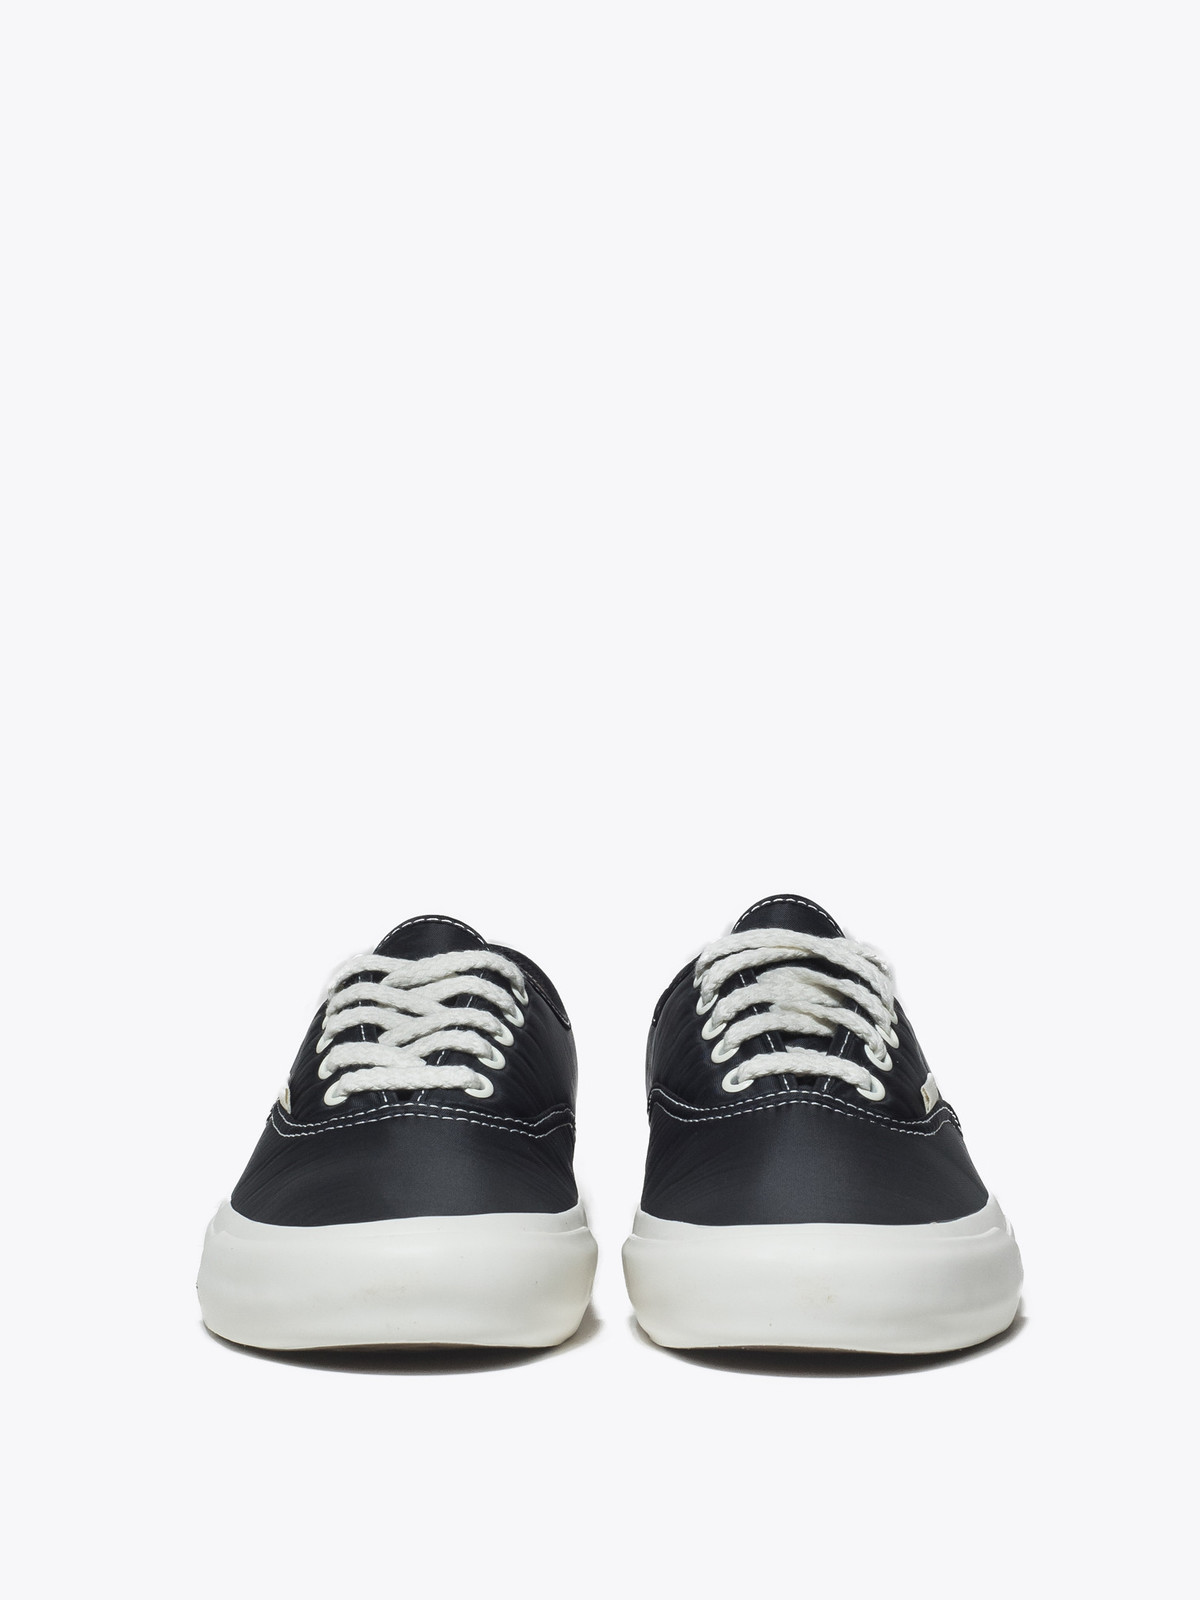 98480b3aa7a8bf The Vault by Vans x Our Legacy UA Authentic Pro LX